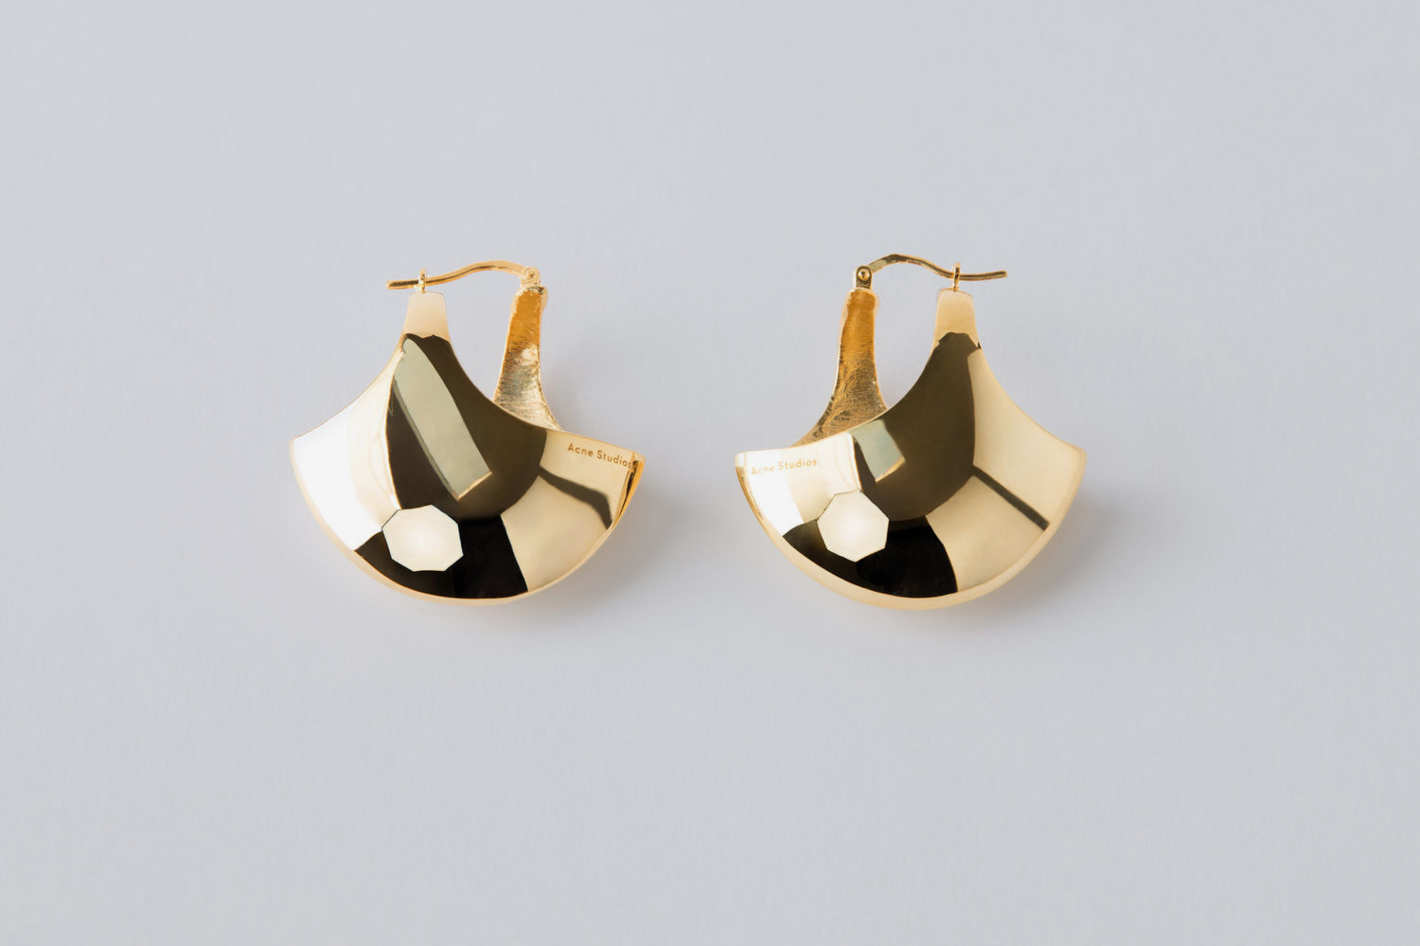 Nanni Gold Earrings